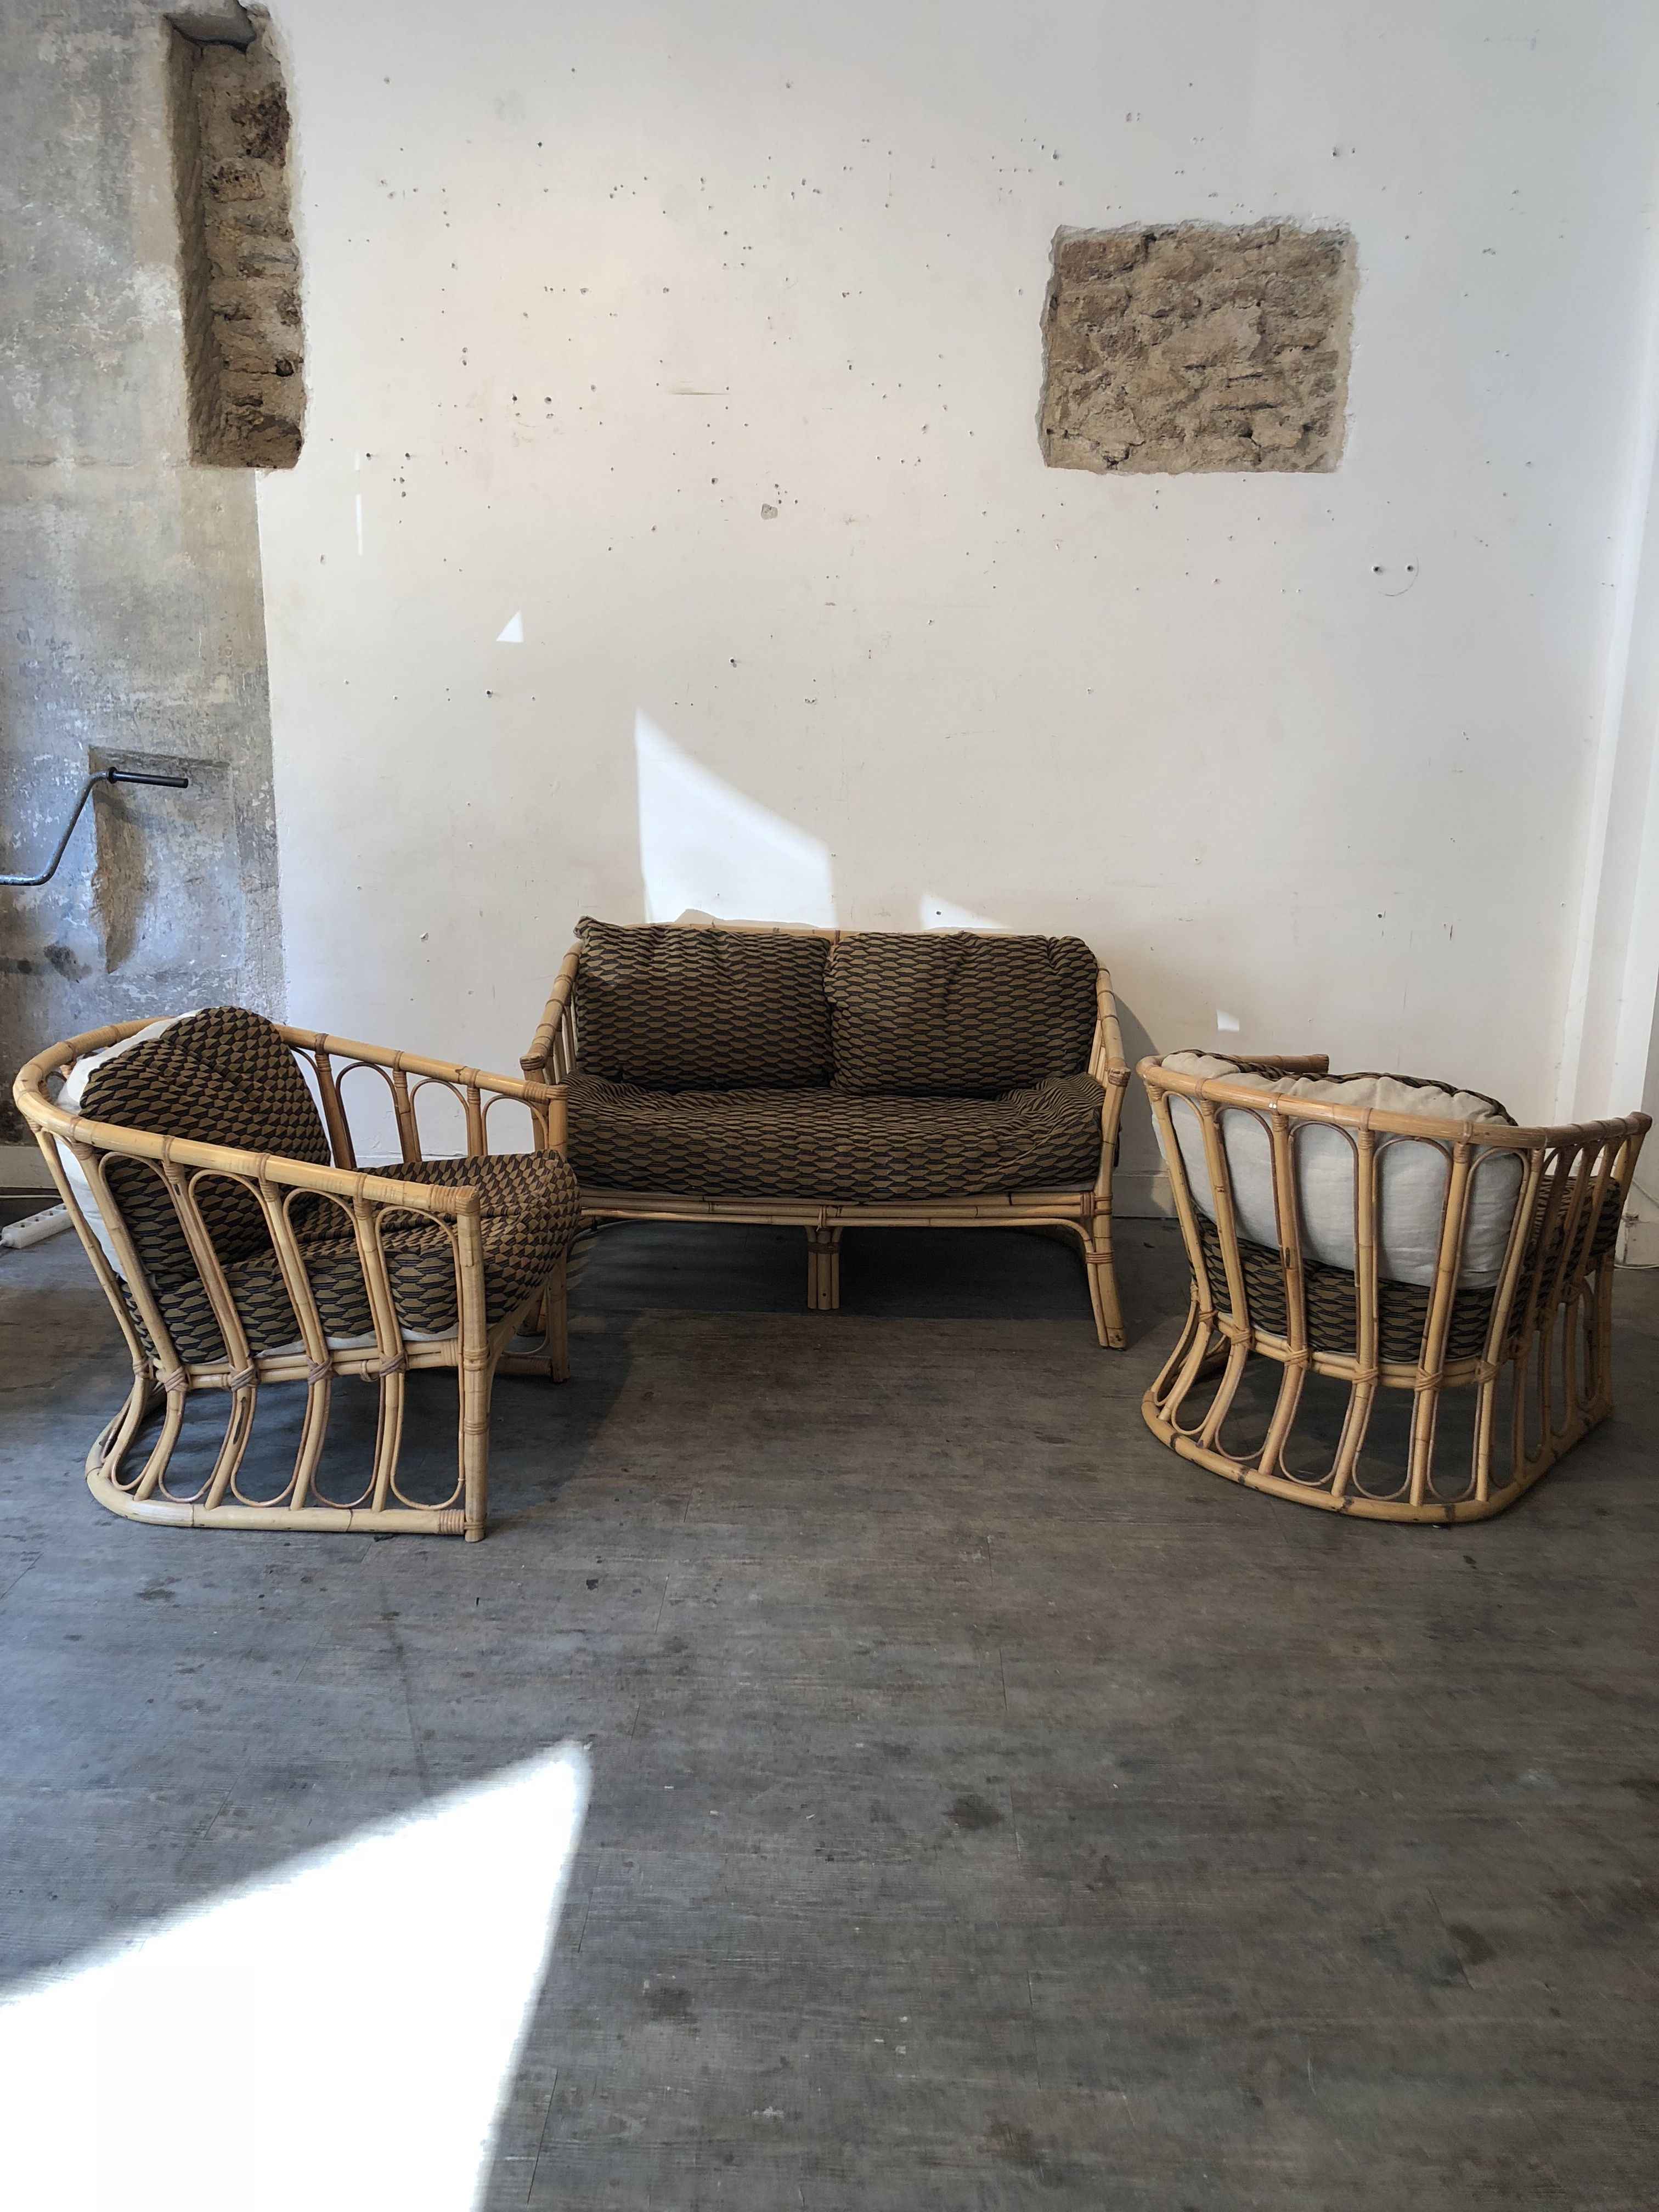 Vintage Living Room Set In Wicker And Rattan Design Market throughout 10 Clever Ways How to Improve Vintage Living Room Sets